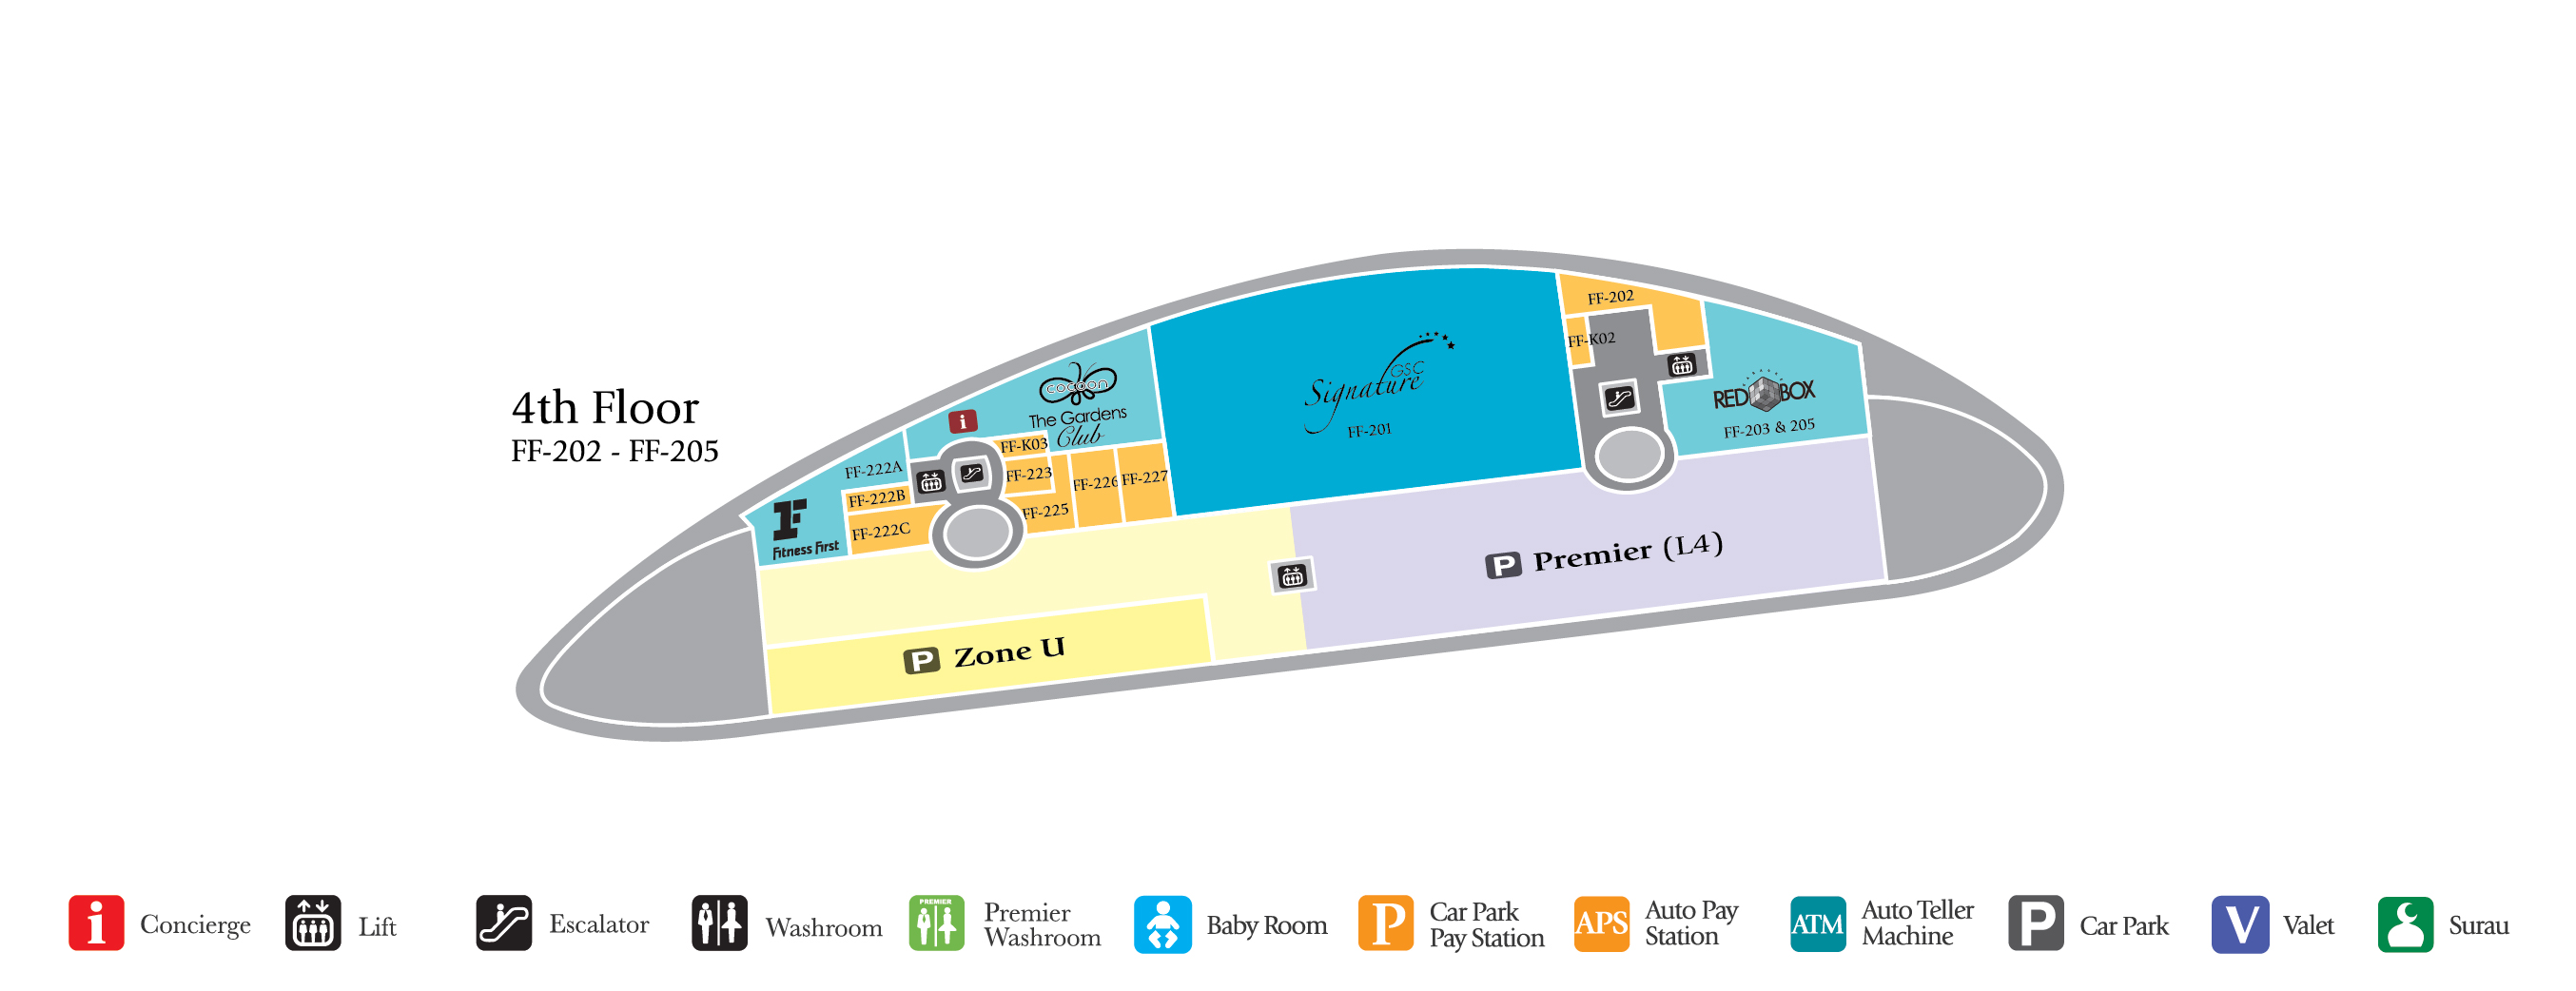 The Gardens Mall Floor Plan 6